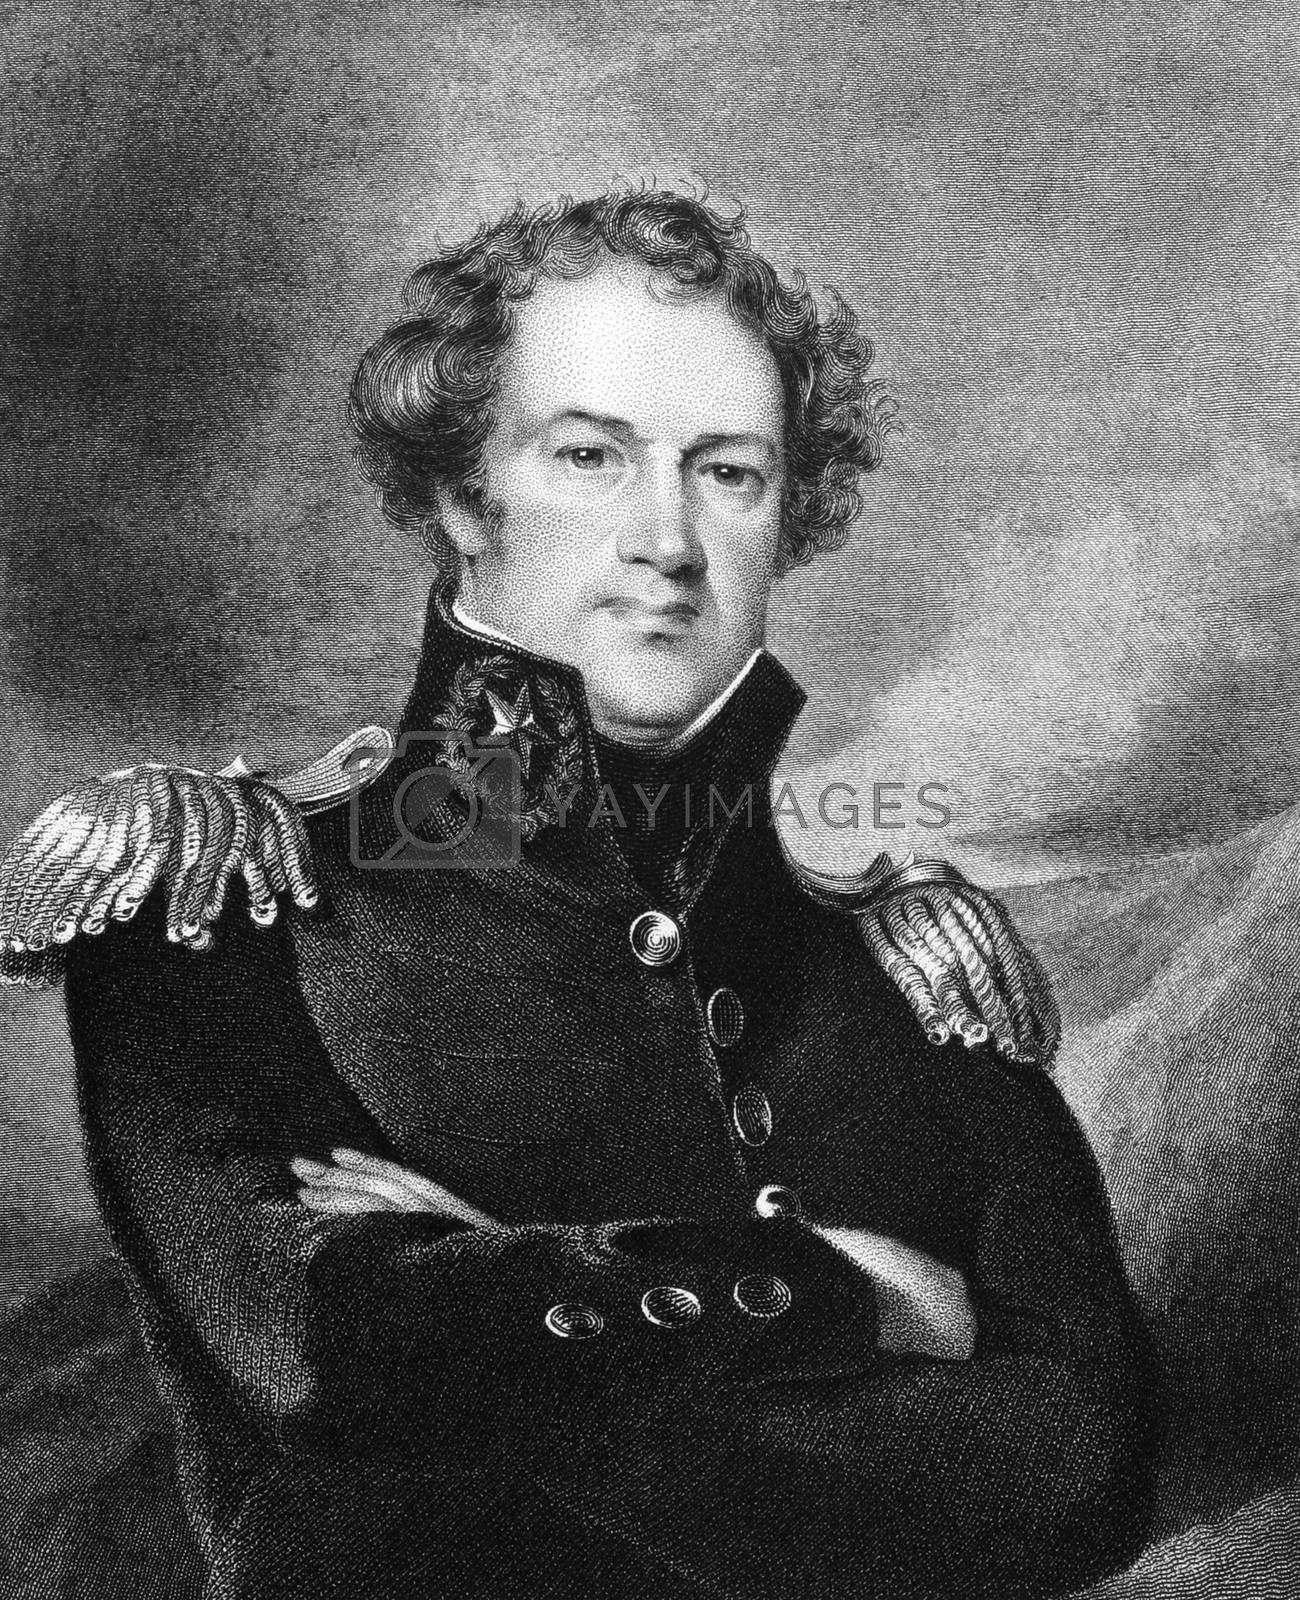 Alexander Macomb (1782-1841) on engraving from 1834. Commanding General of the United States Army during 1828-1841. Engraved by J.B Longacre and published in ''National Portrait Gallery of Distinguished Americans'',USA,1834.